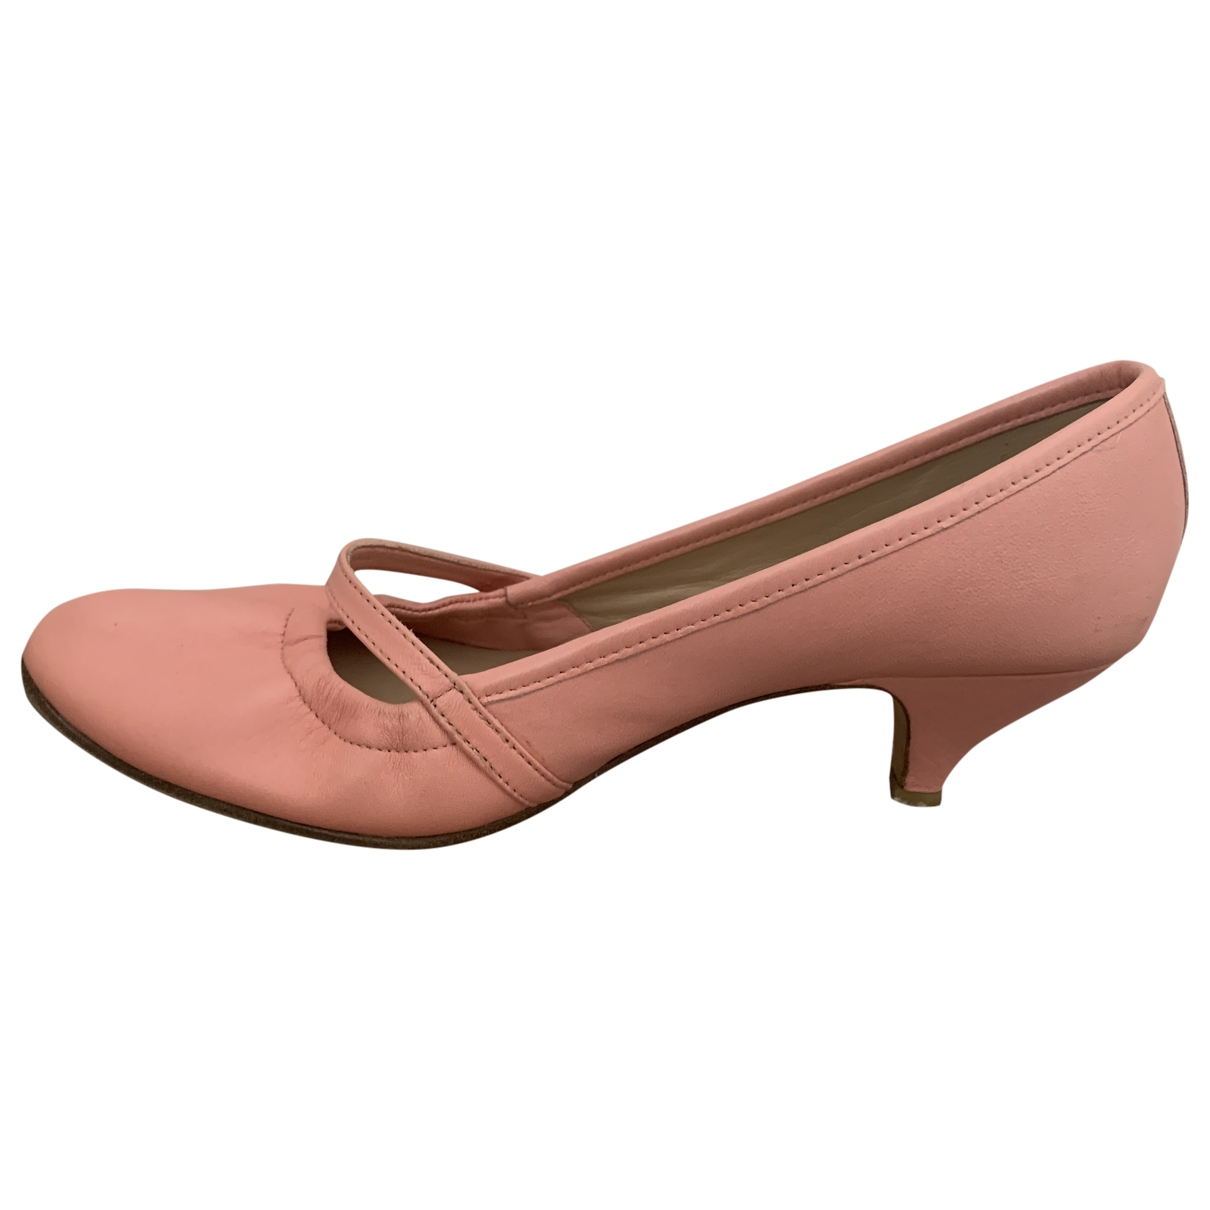 Repetto \N Pink Leather Heels for Women 37.5 EU